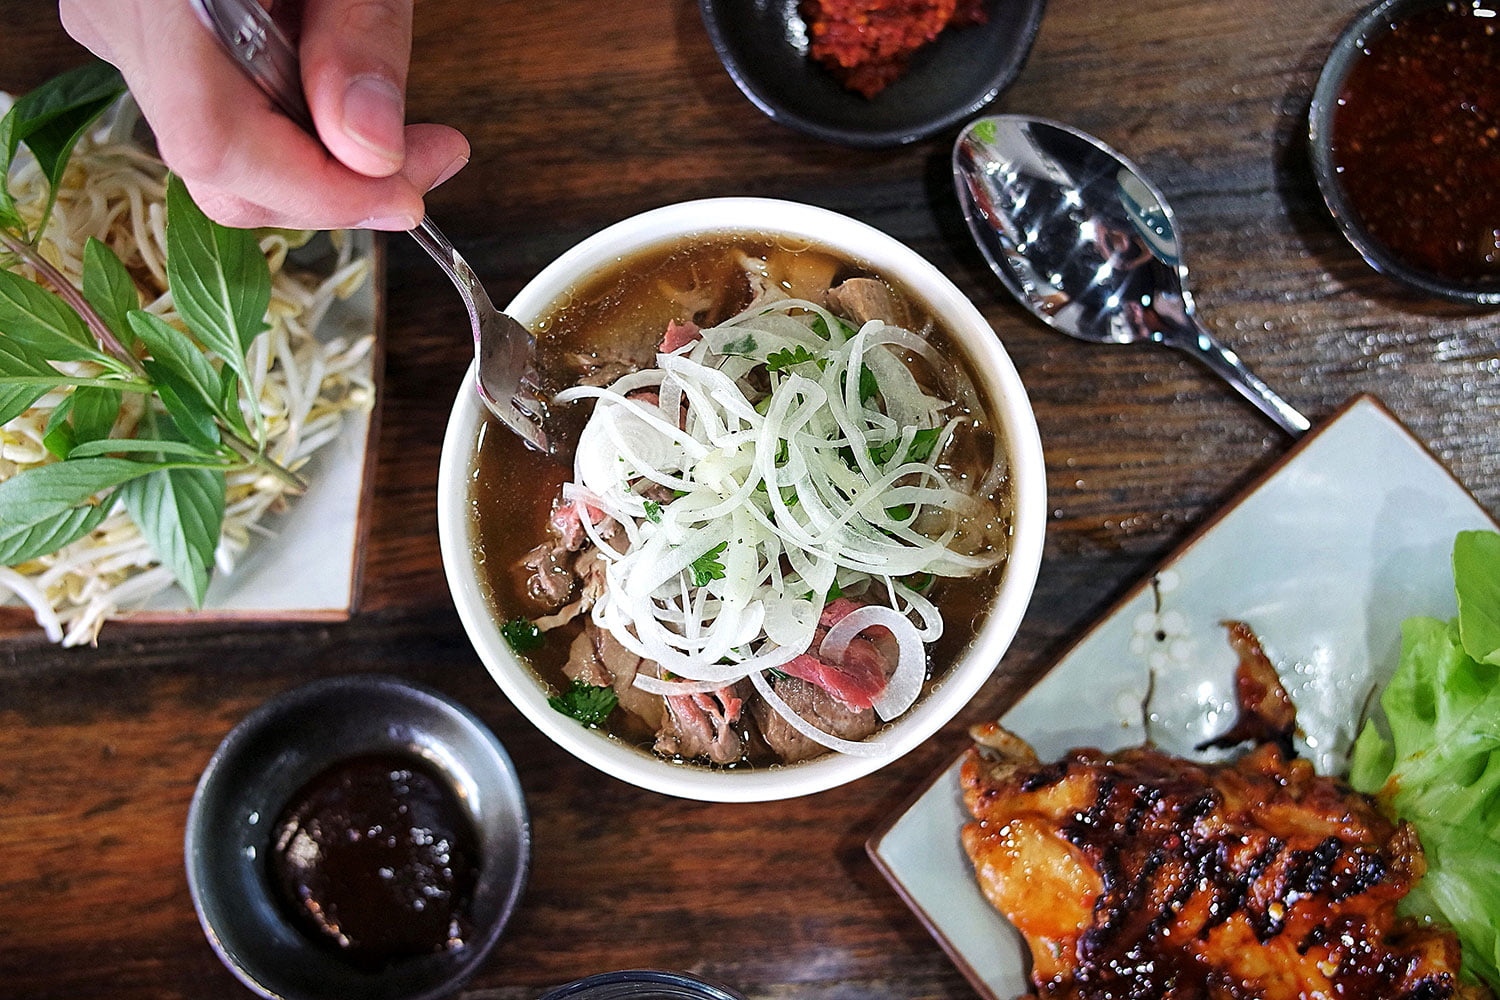 A fork digging into a bowl of pho amongst a table of food that includes grilled chicken